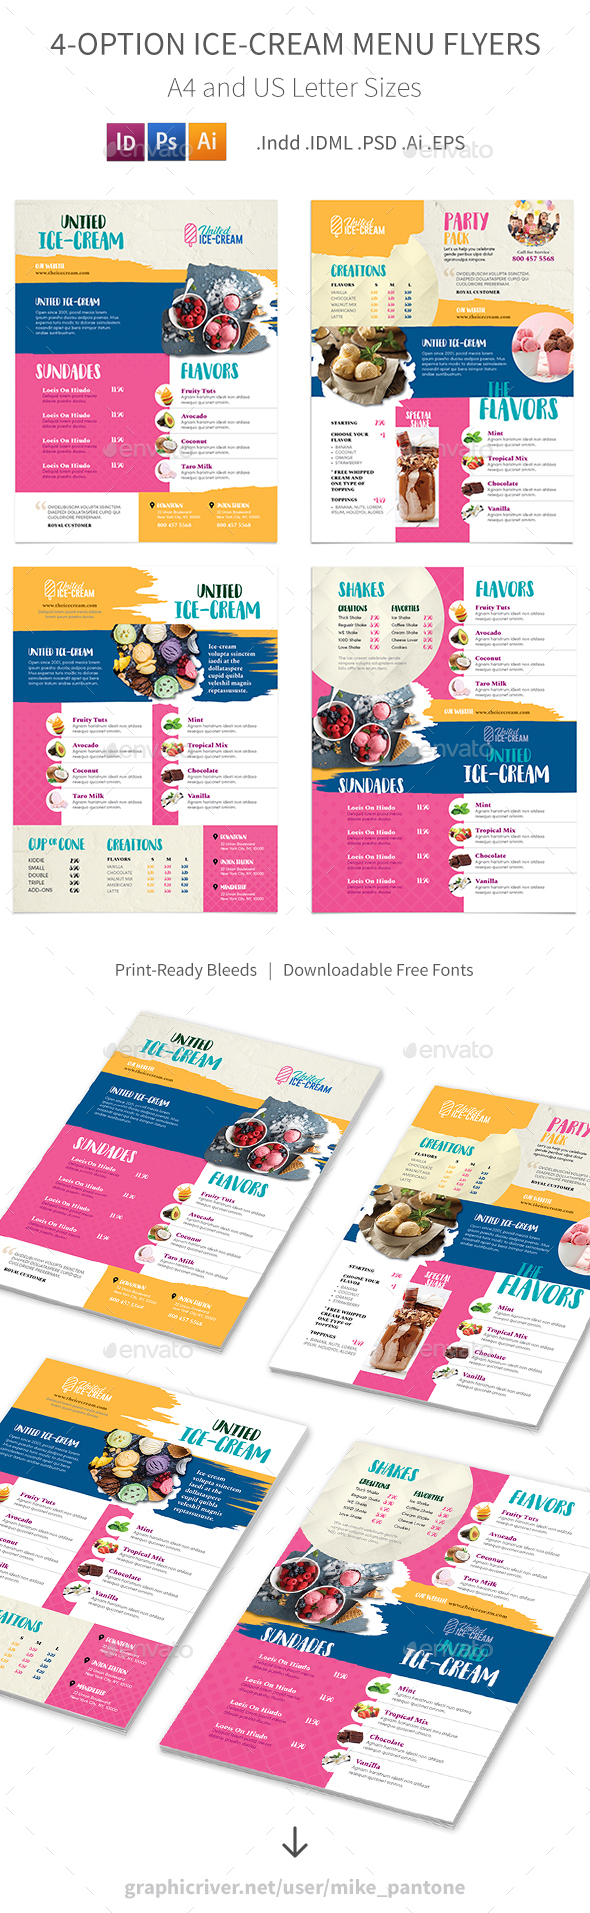 GraphicRiver Ice-cream Restaurant Menu Flyers 3 4 Options 21189228